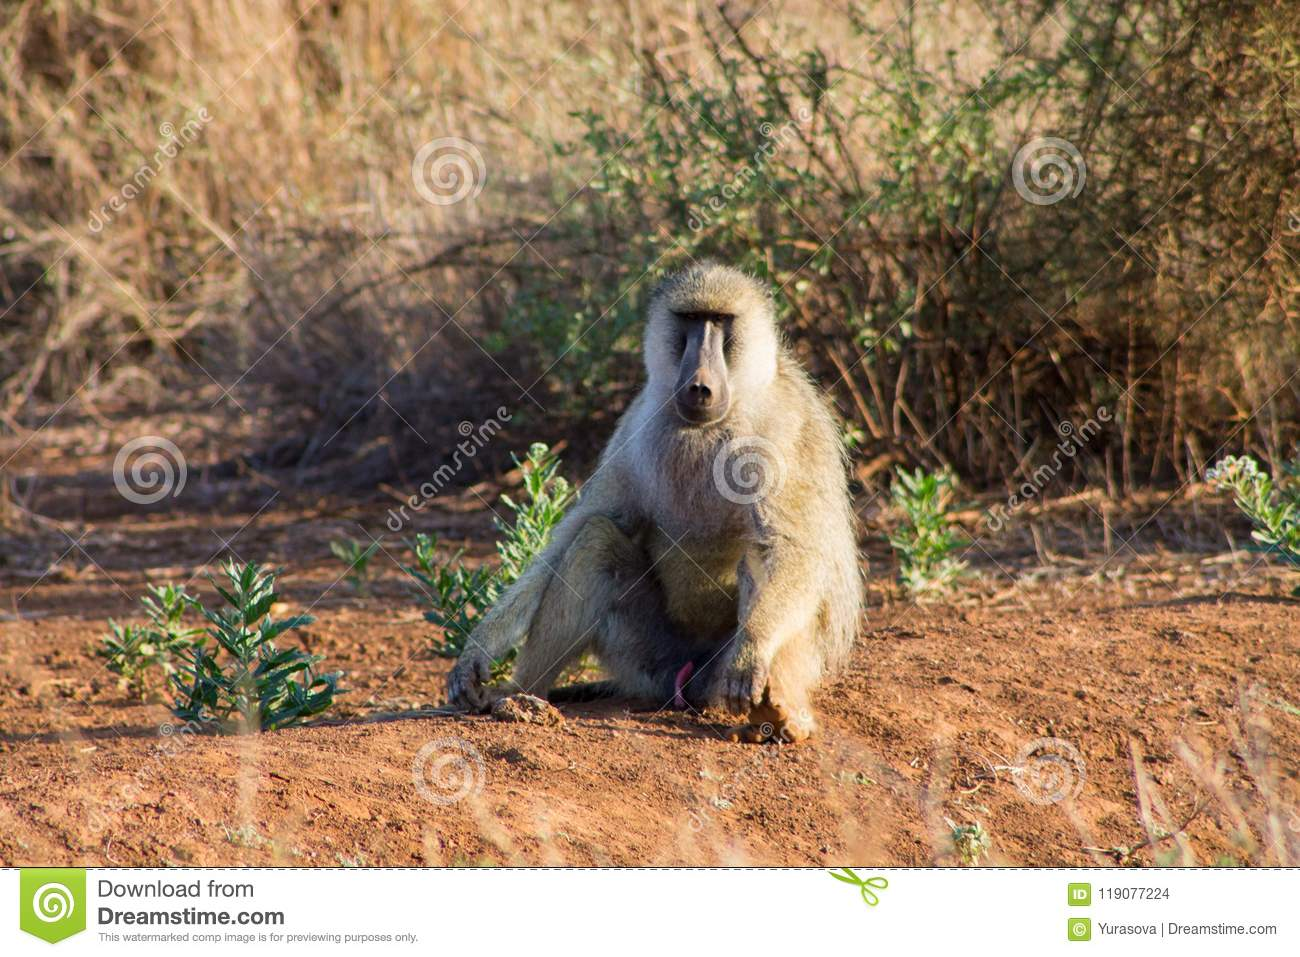 Baboon monkey sit on the ground in Africa wildlife